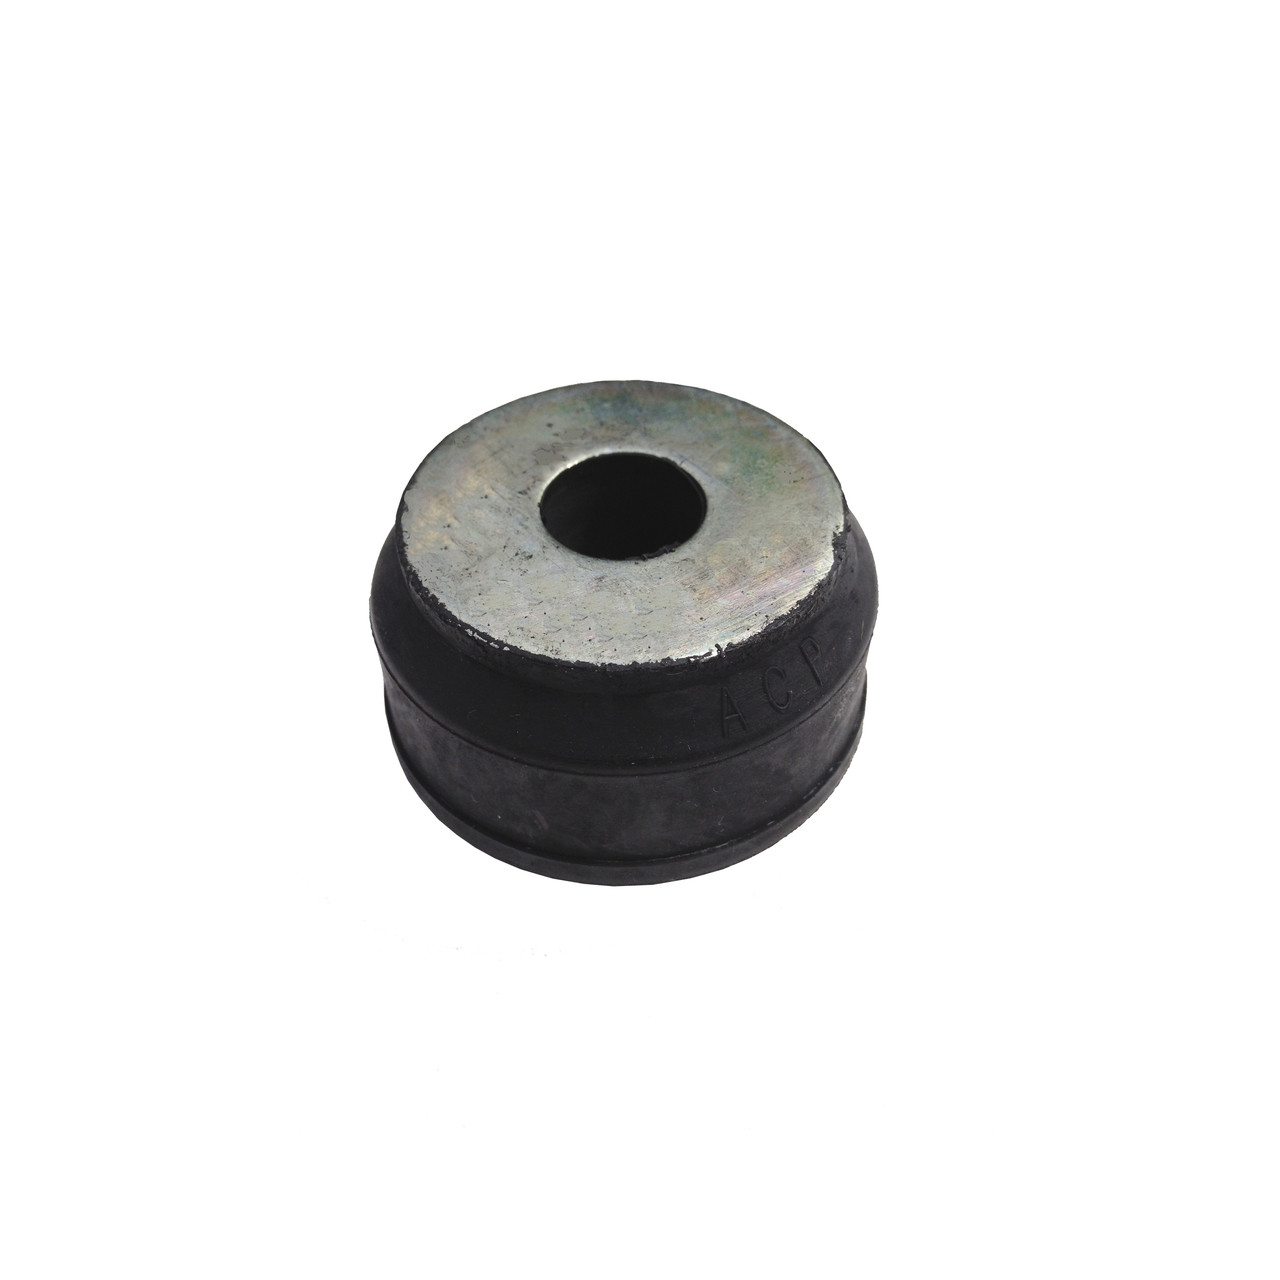 Cantilever Rear Transmission Mount 144/170/200/260/289 From 4/16/1961 [FC-EC020]